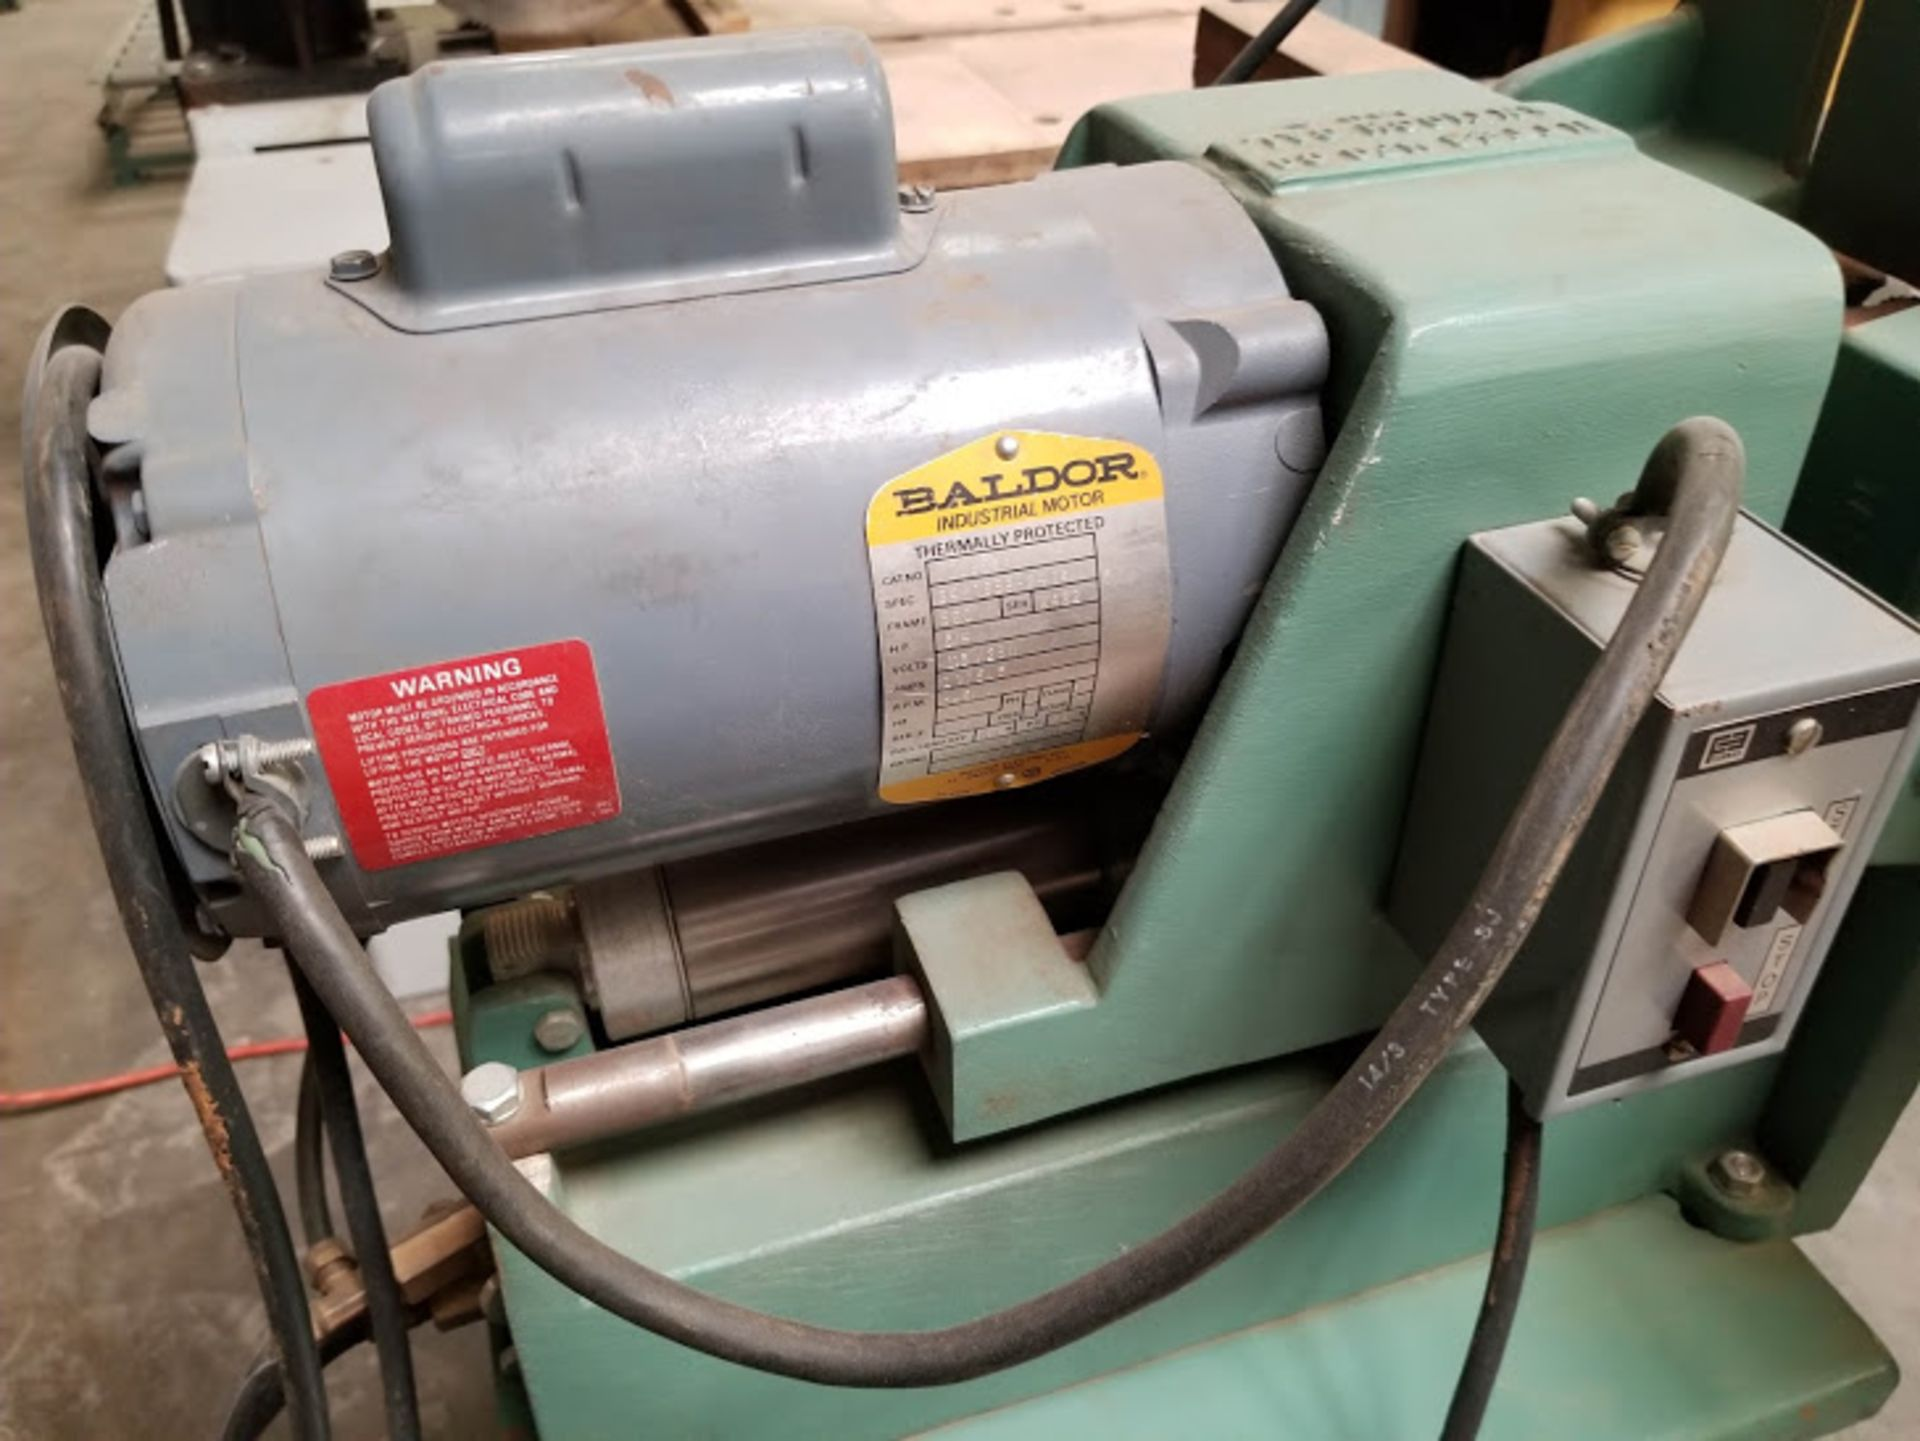 Ritter 1 Spindle Boring Machine, Pneumatic Foot Pedal, Baldor 3/4 HP 115/230 Volts 1 Phase Motor - Image 6 of 7